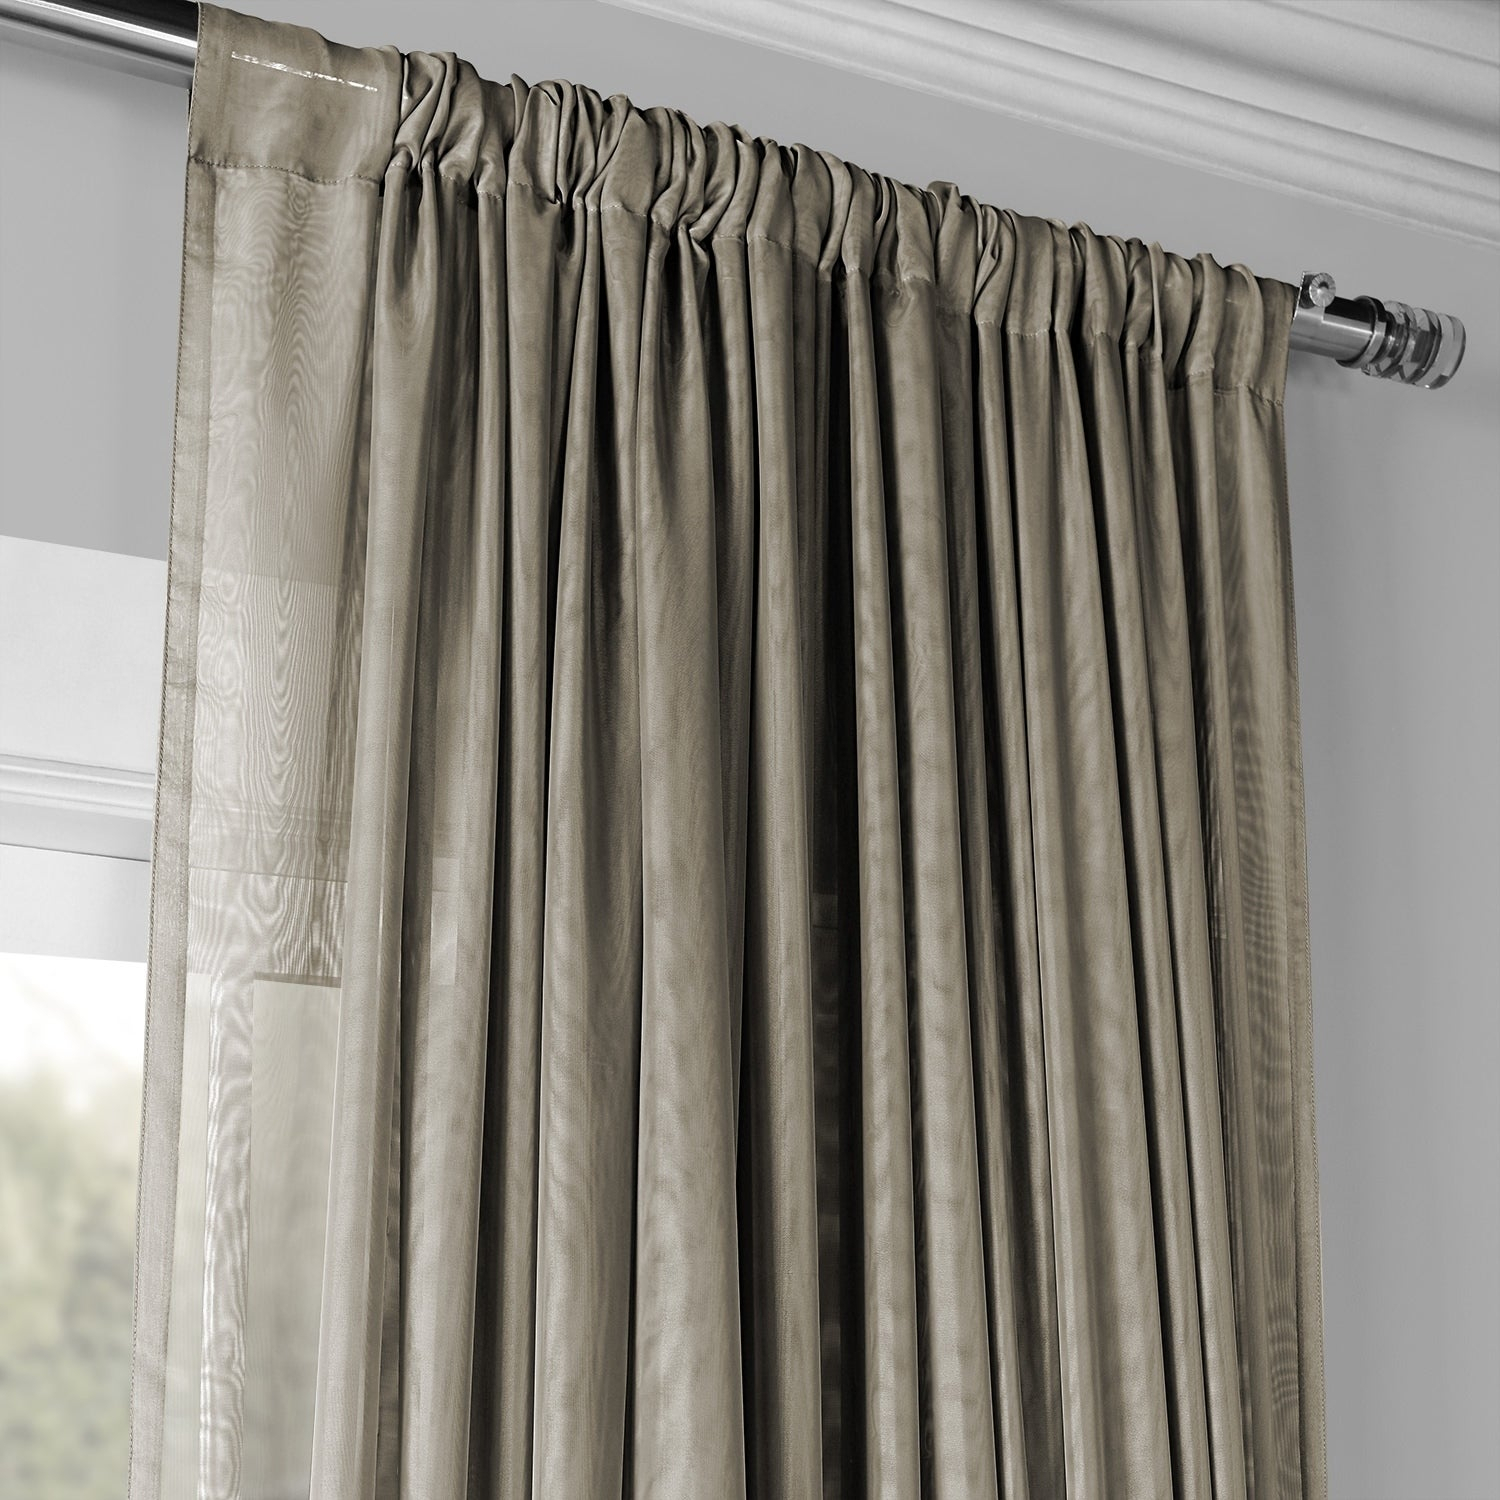 Exclusive Fabrics Signature Extrawide Double Layer Sheer Curtain Panel Intended For Signature White Double Layer Sheer Curtain Panels (View 10 of 30)